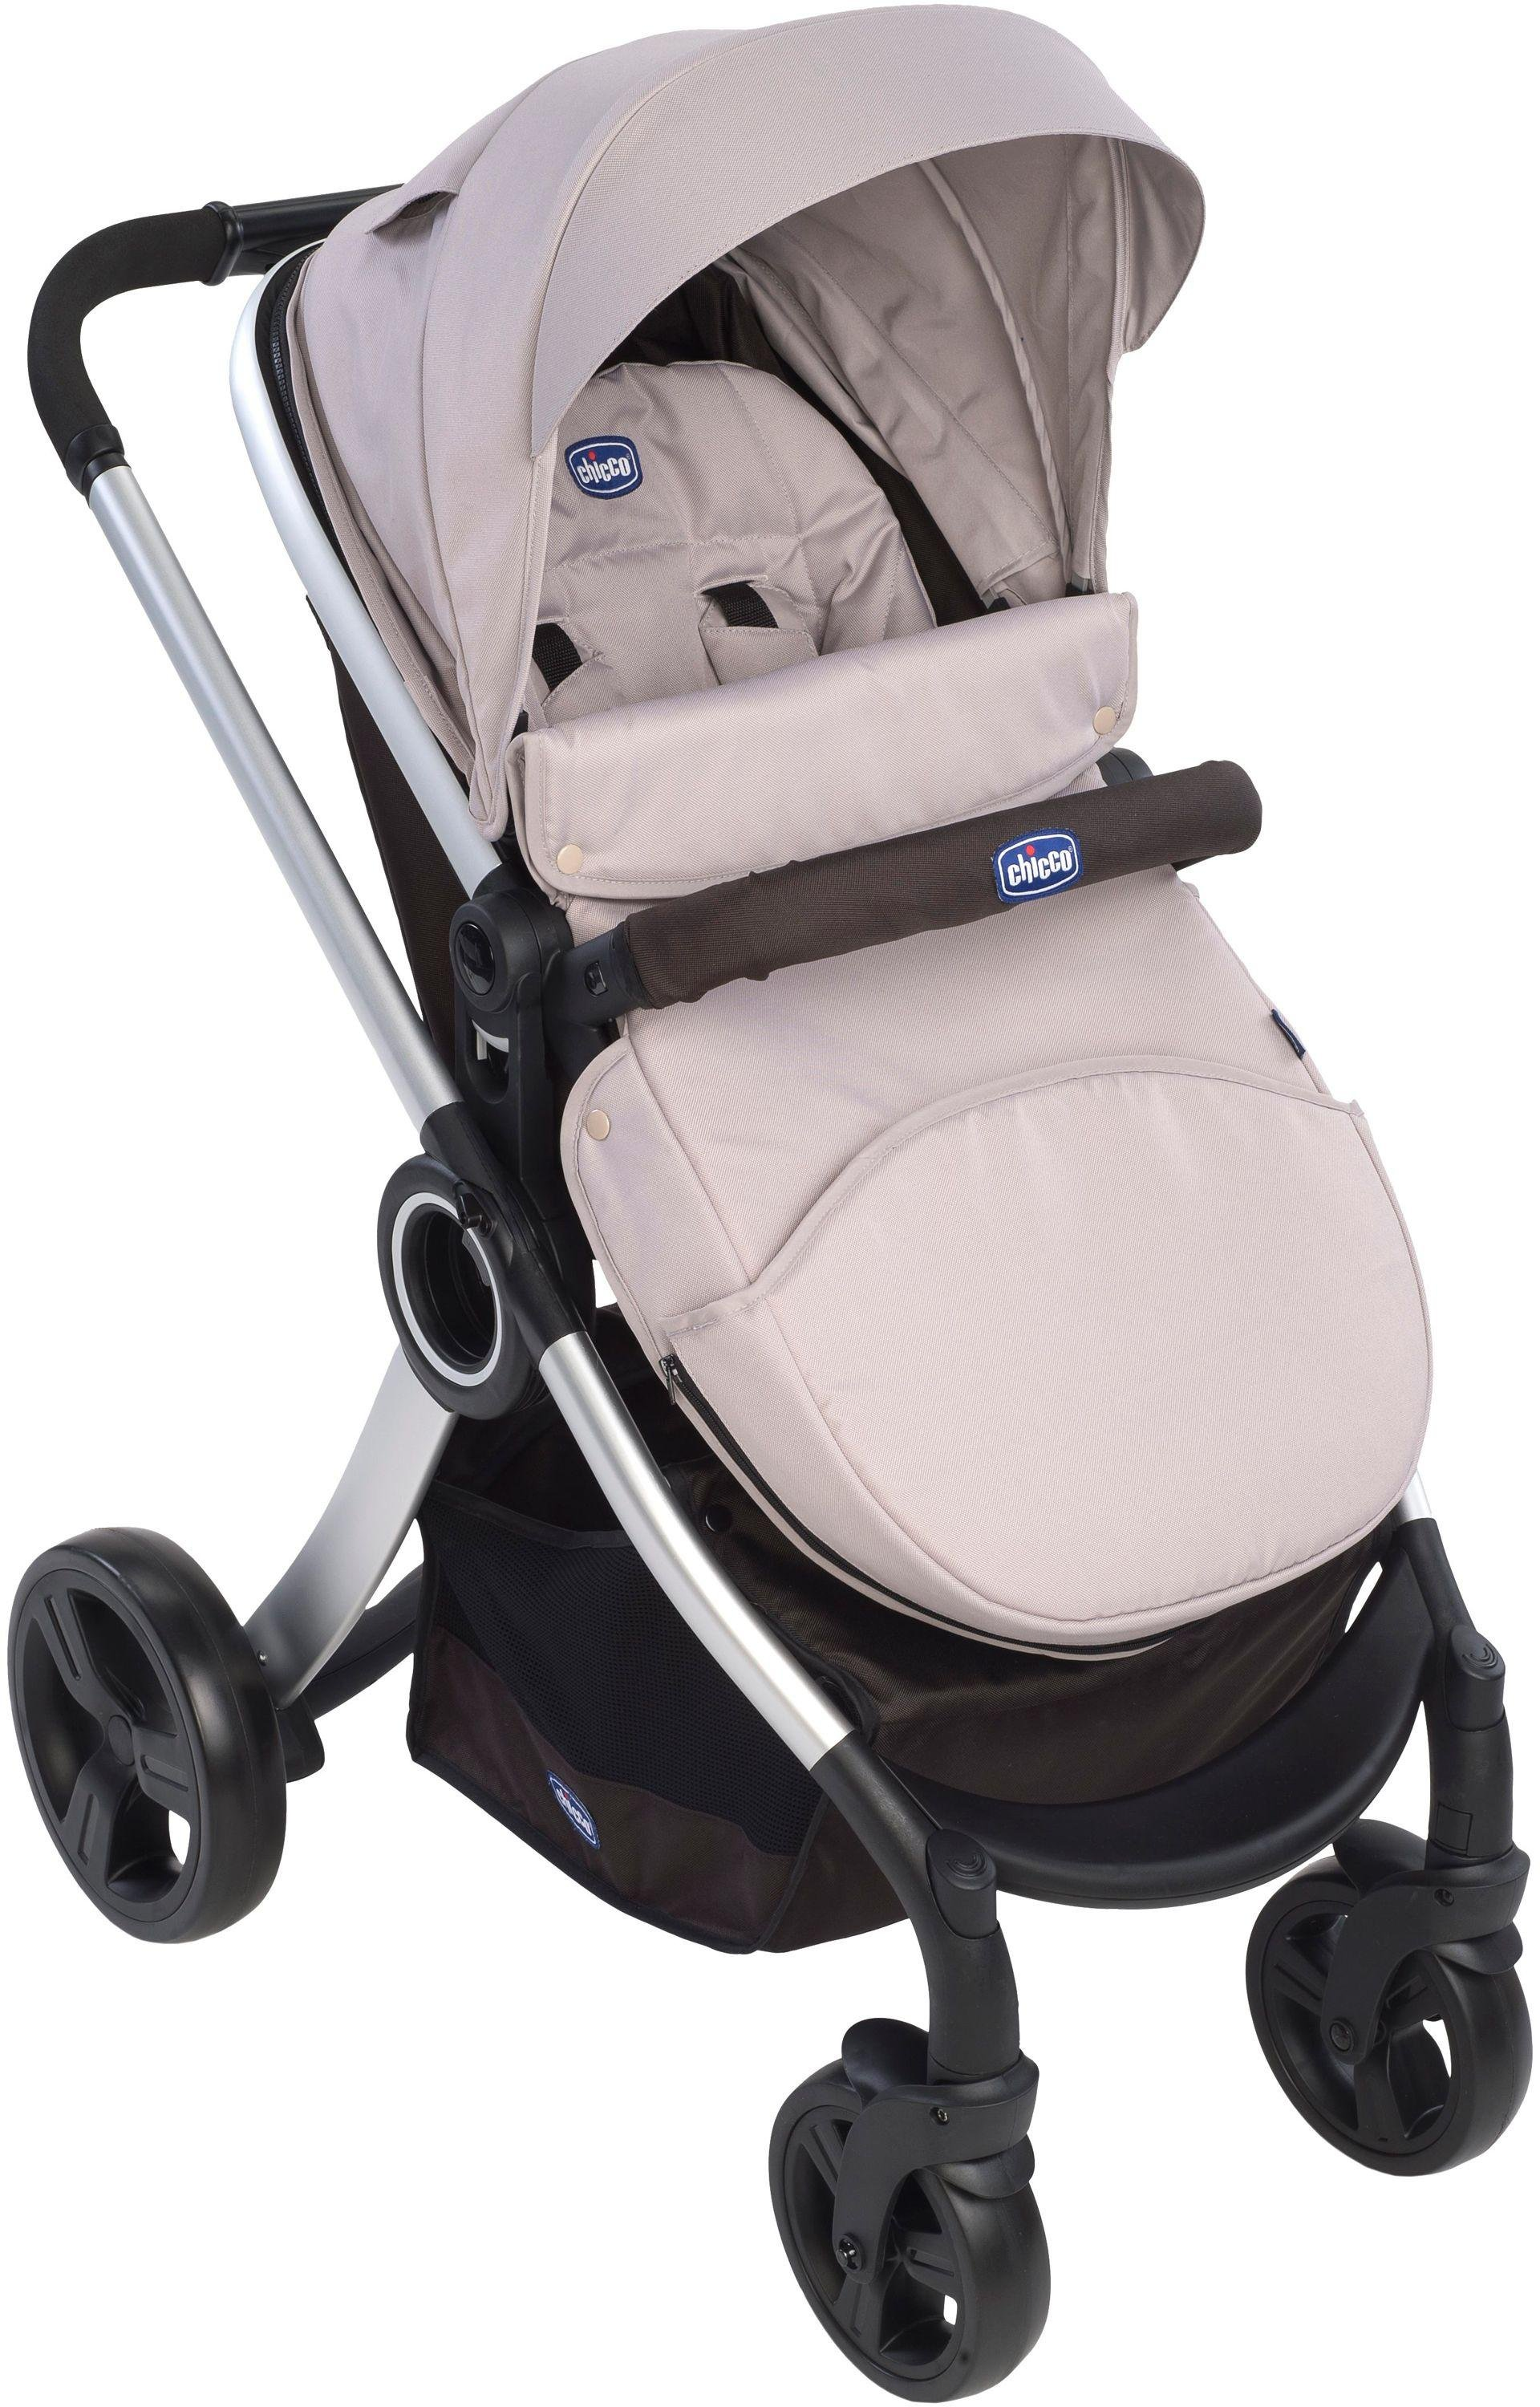 Image of Chicco - Urban - Pushchair Special Edition Pack - Summer Sahara